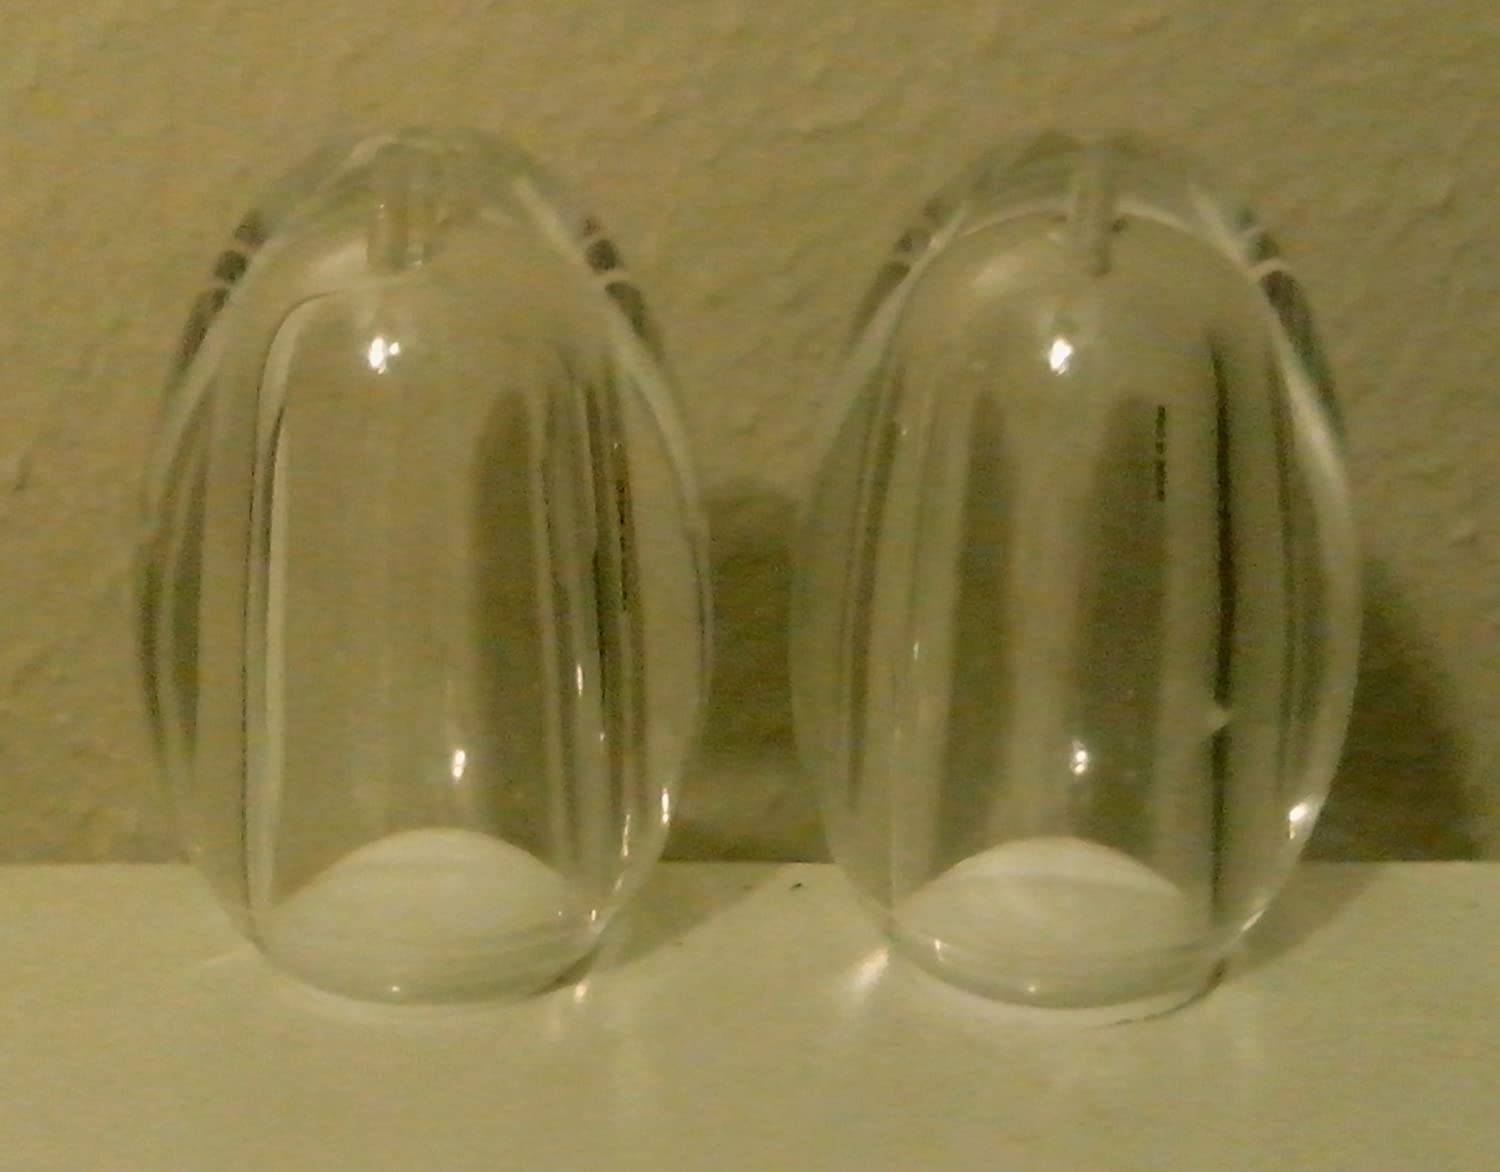 Acrylic Just Like Egg Shakers (Set of 2), 2.0 x 3.0, by William Bounds gigabyte ga p55 ud3r original used desktop motherboard p55 ud3r p55 lga 1156 i5 i7 ddr3 16g sata2 atx